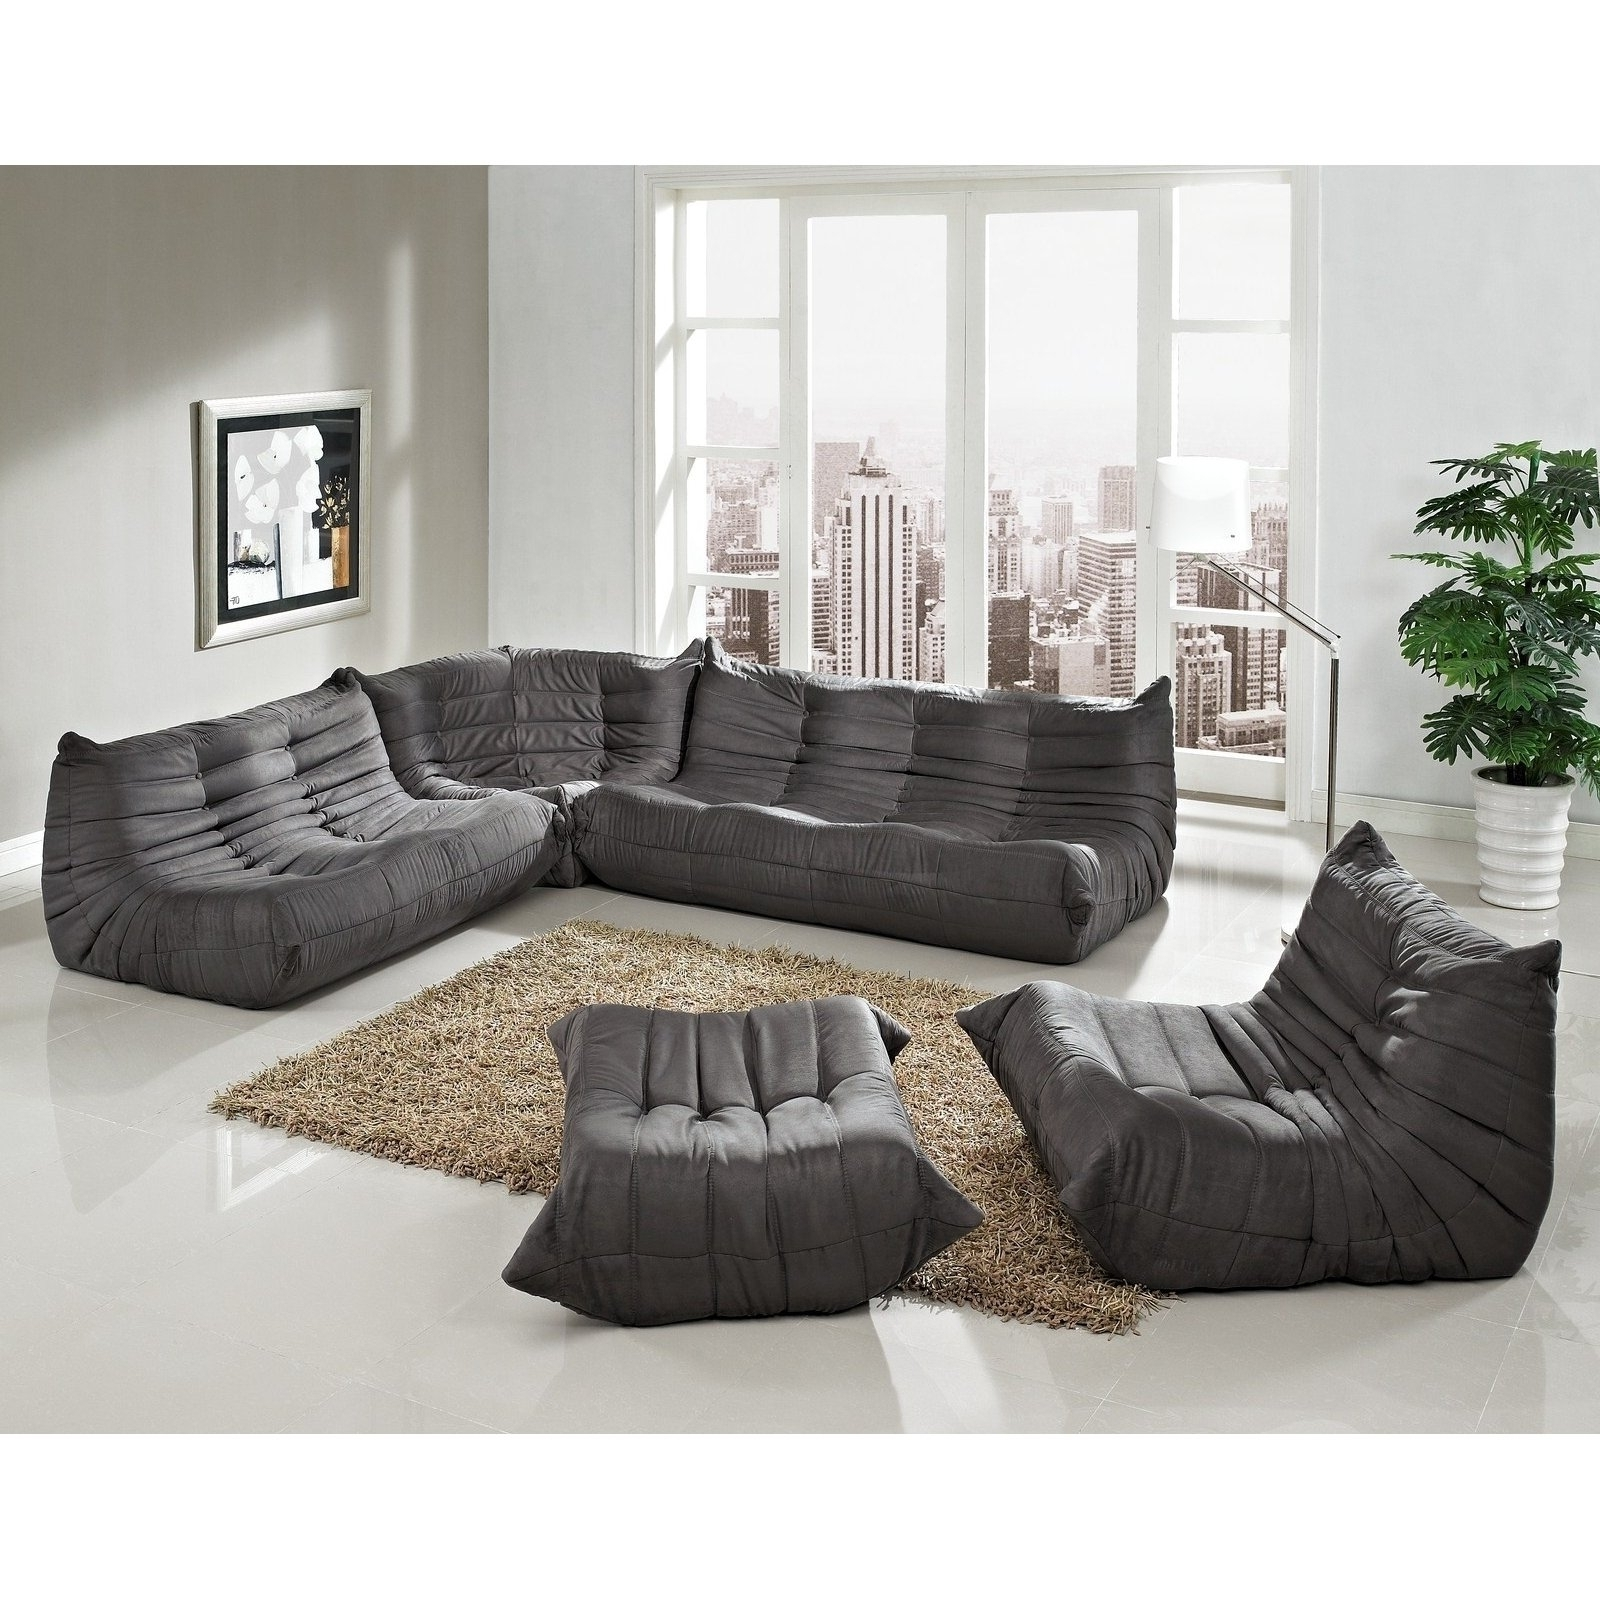 Recent Unique Low Profile Sectional Sofa 26 For Sofa Design Ideas With Low With Unique Sectional Sofas (View 11 of 20)